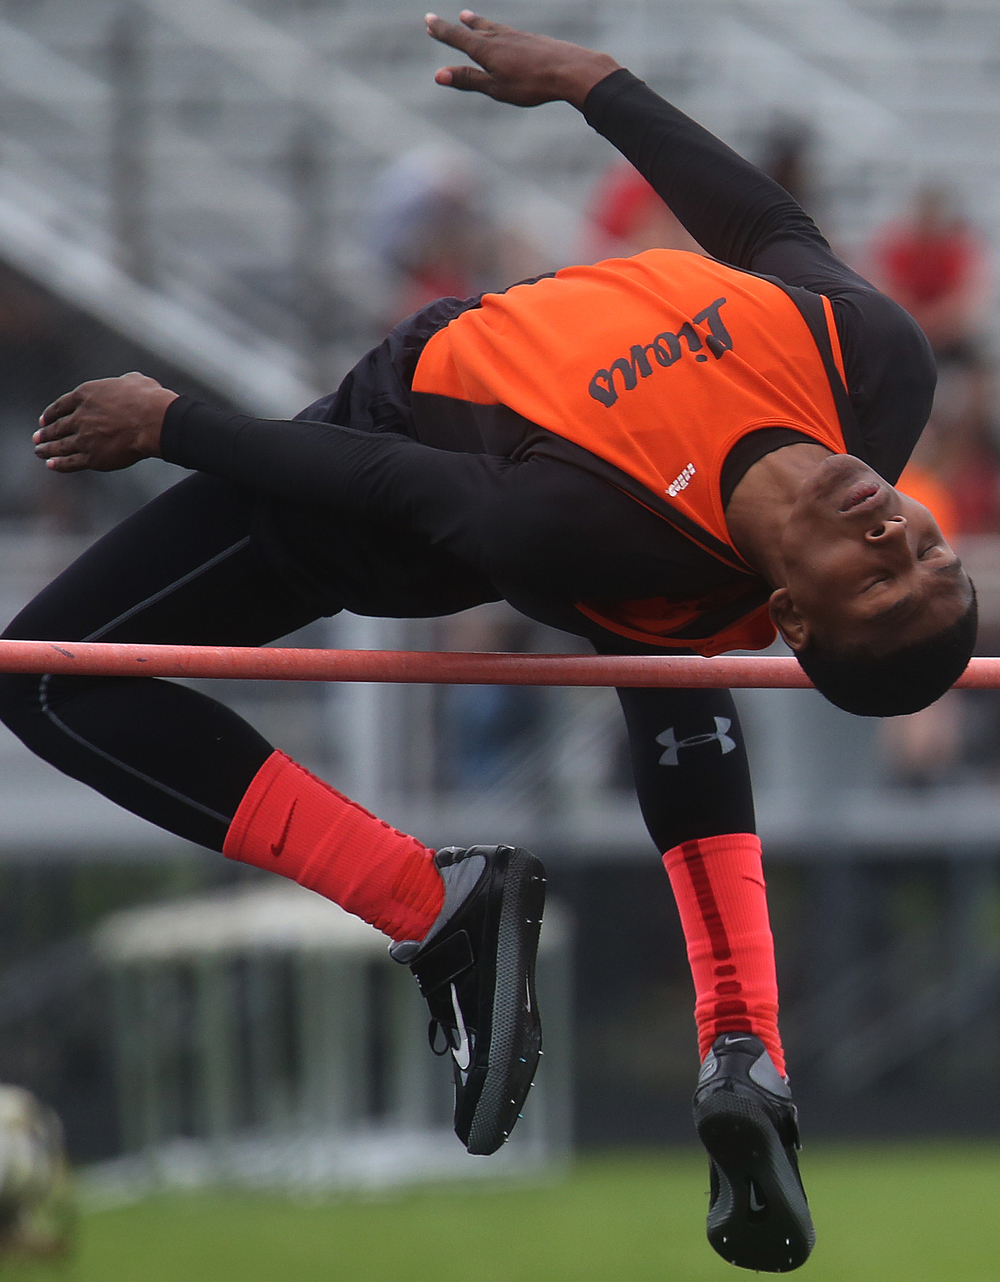 In the high jump, Lanphier's A'Jonte Lee cleared 6-03.00 feet but came in second to teammate Kendrick Griffin who won the event at the same height but needed fewer jumps. David Spencer/The State Journal-Register